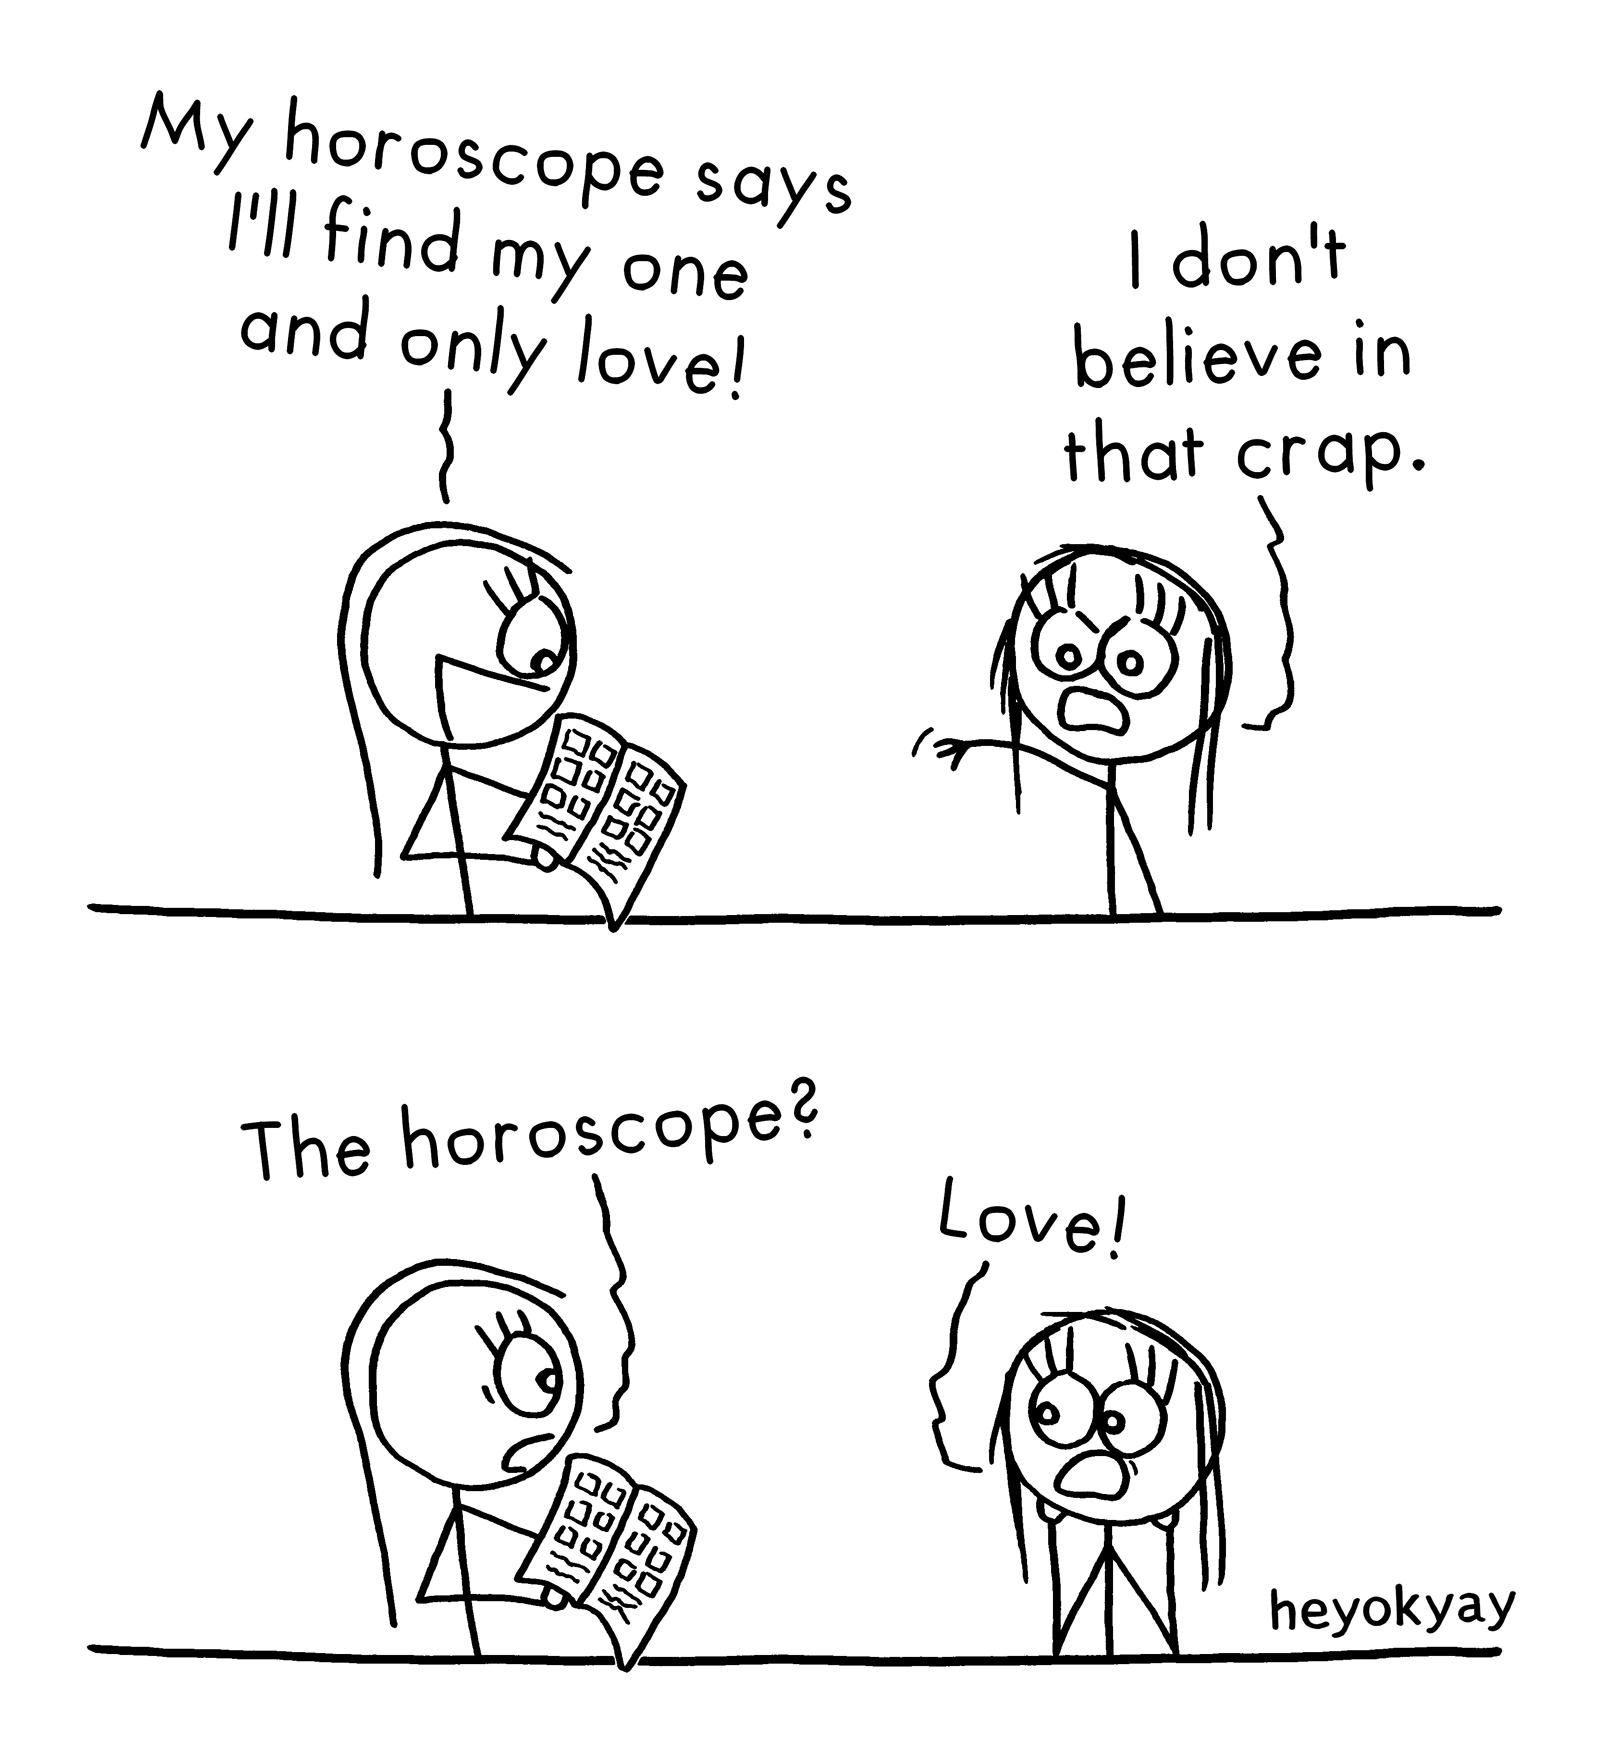 Horoscope heyokyay comic